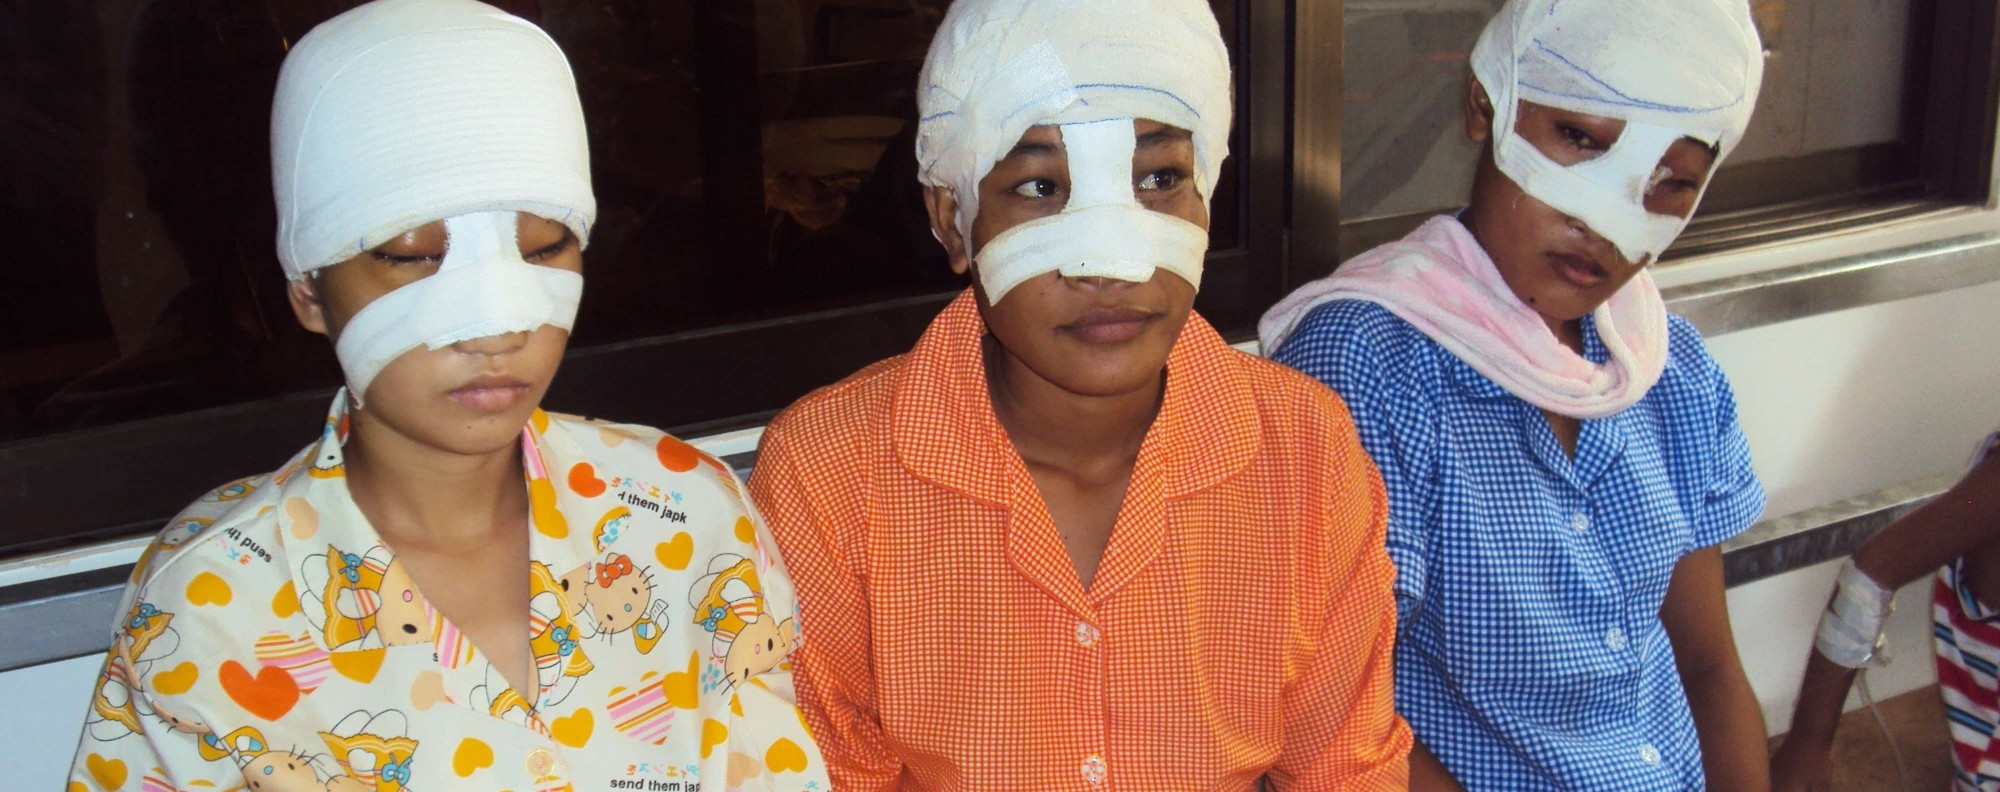 Three Cambodian teenagers after surgery to remove facial disfigurements.